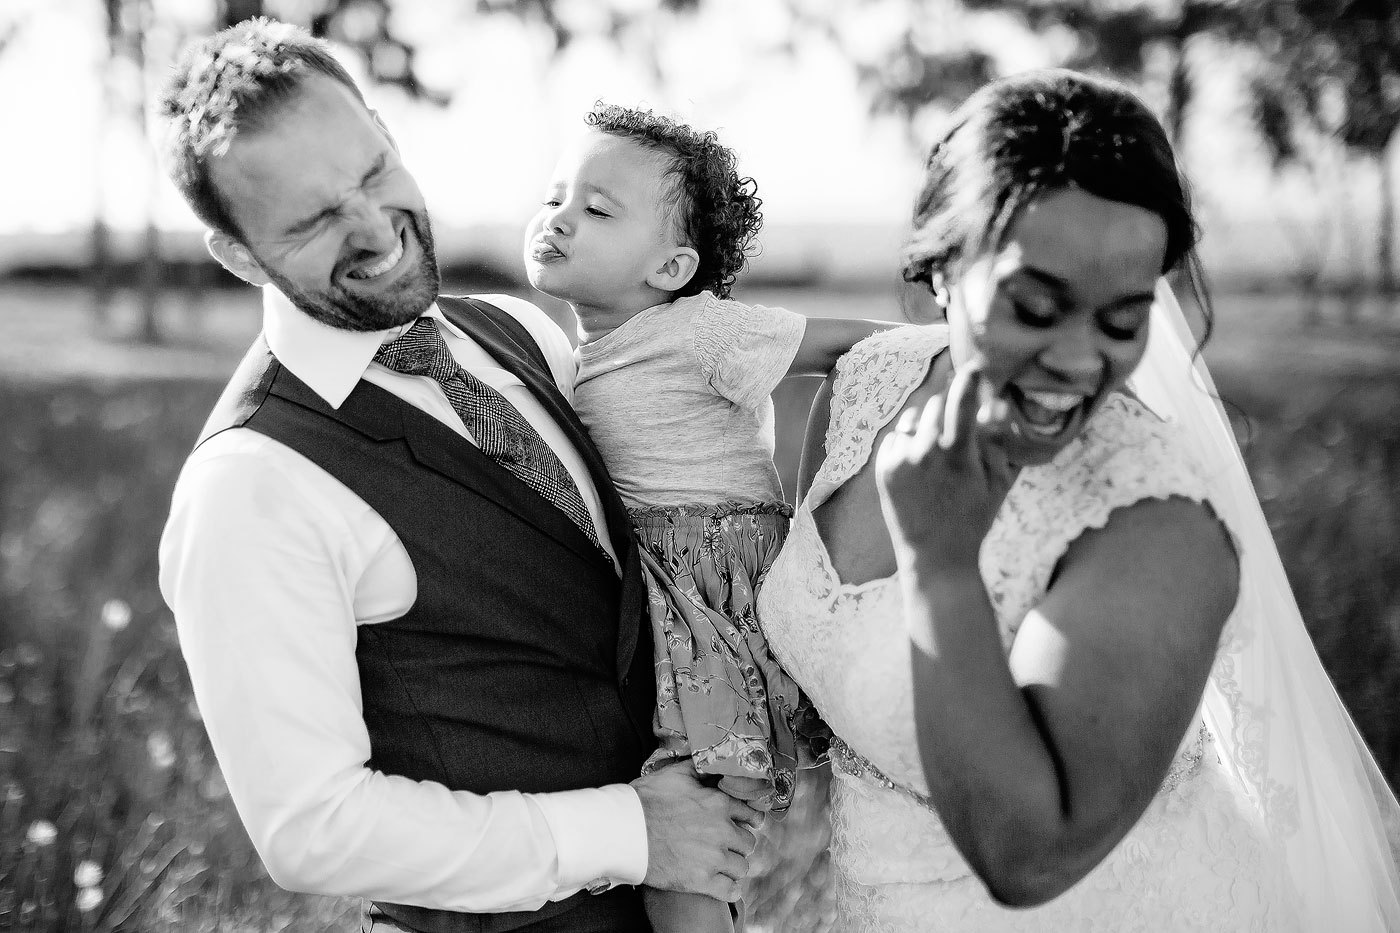 Wedding Family Moment between Bride Groom and Daughter